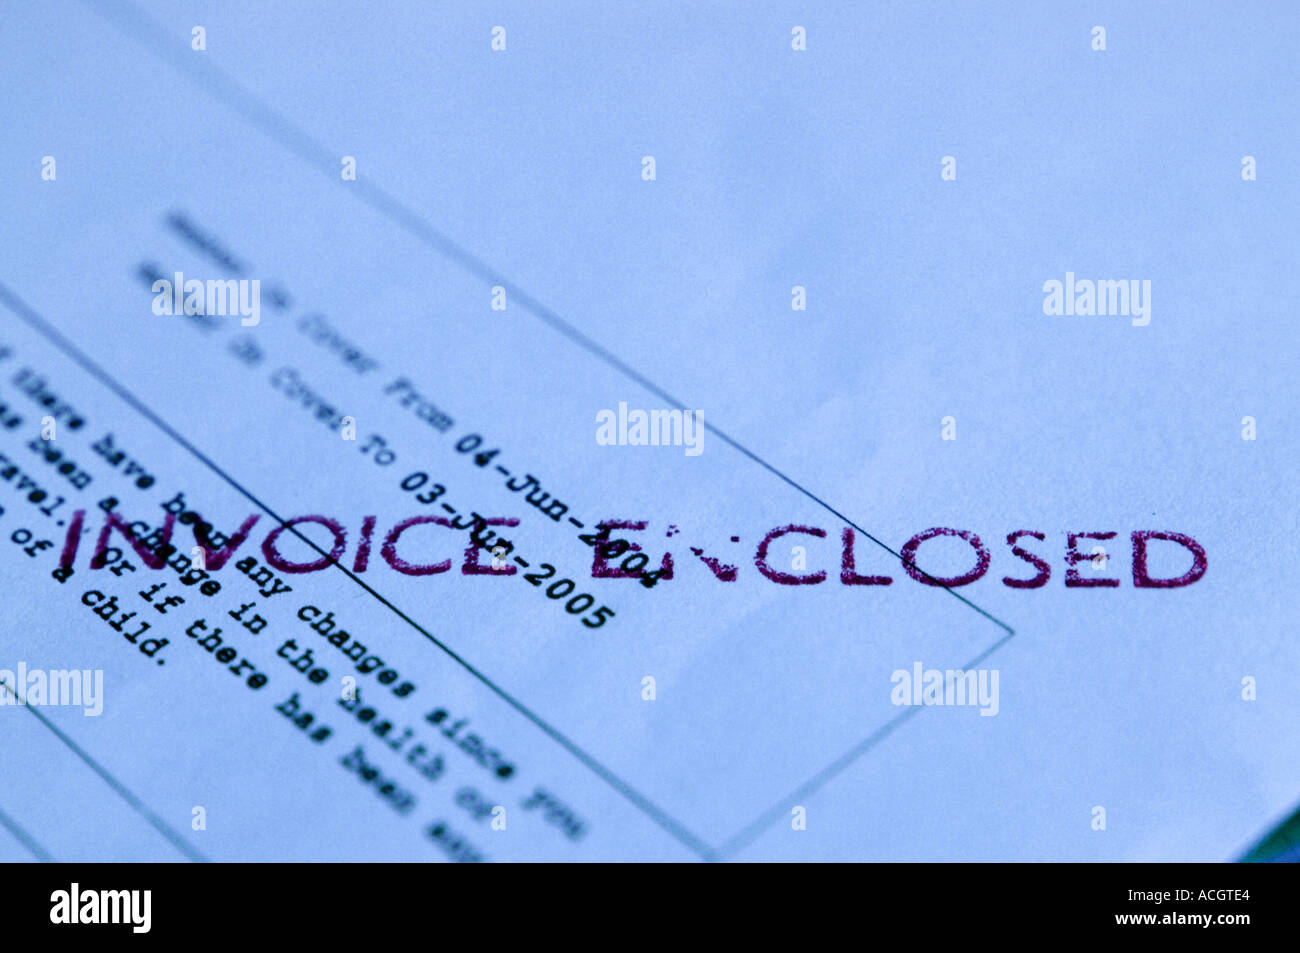 Invoice Business Stamp - Stock Image